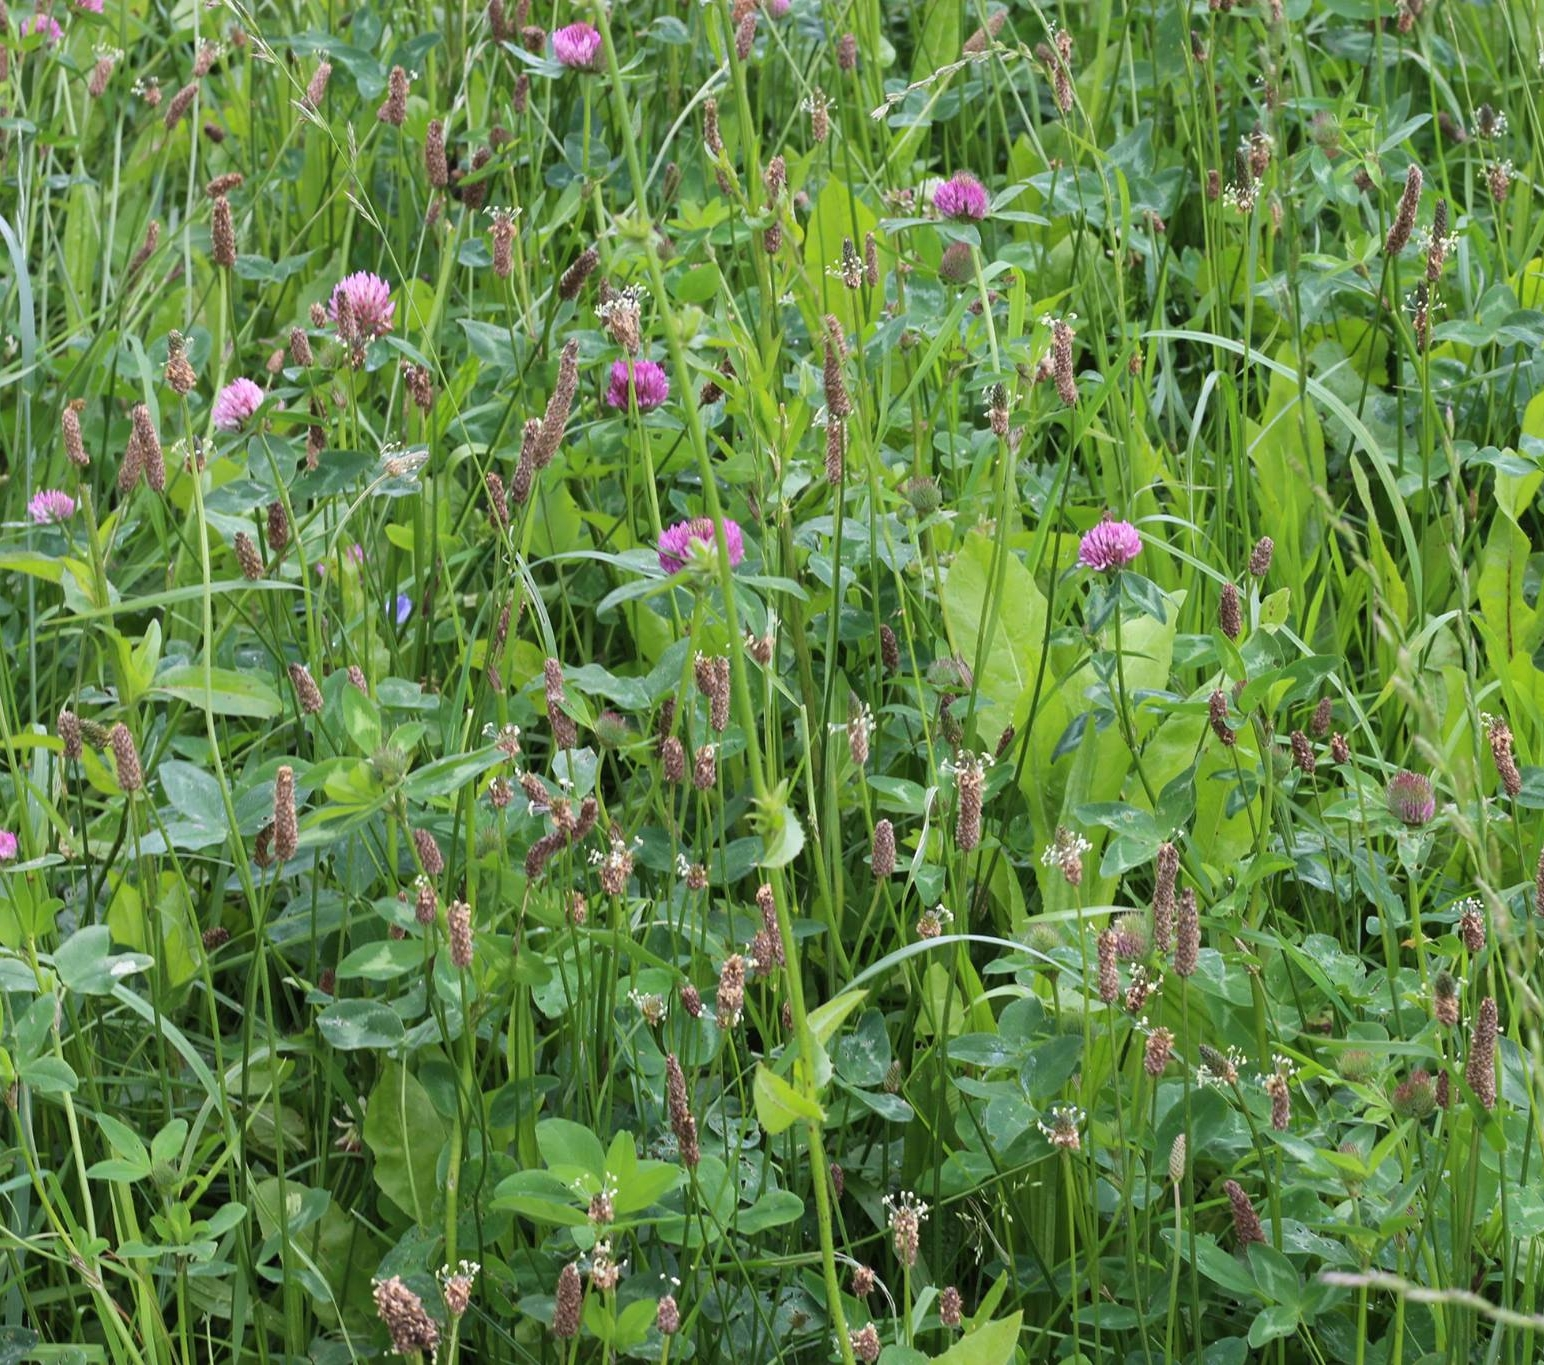 Image:   herbal pasture at Smiling Tree Farm, click to enlarge image.